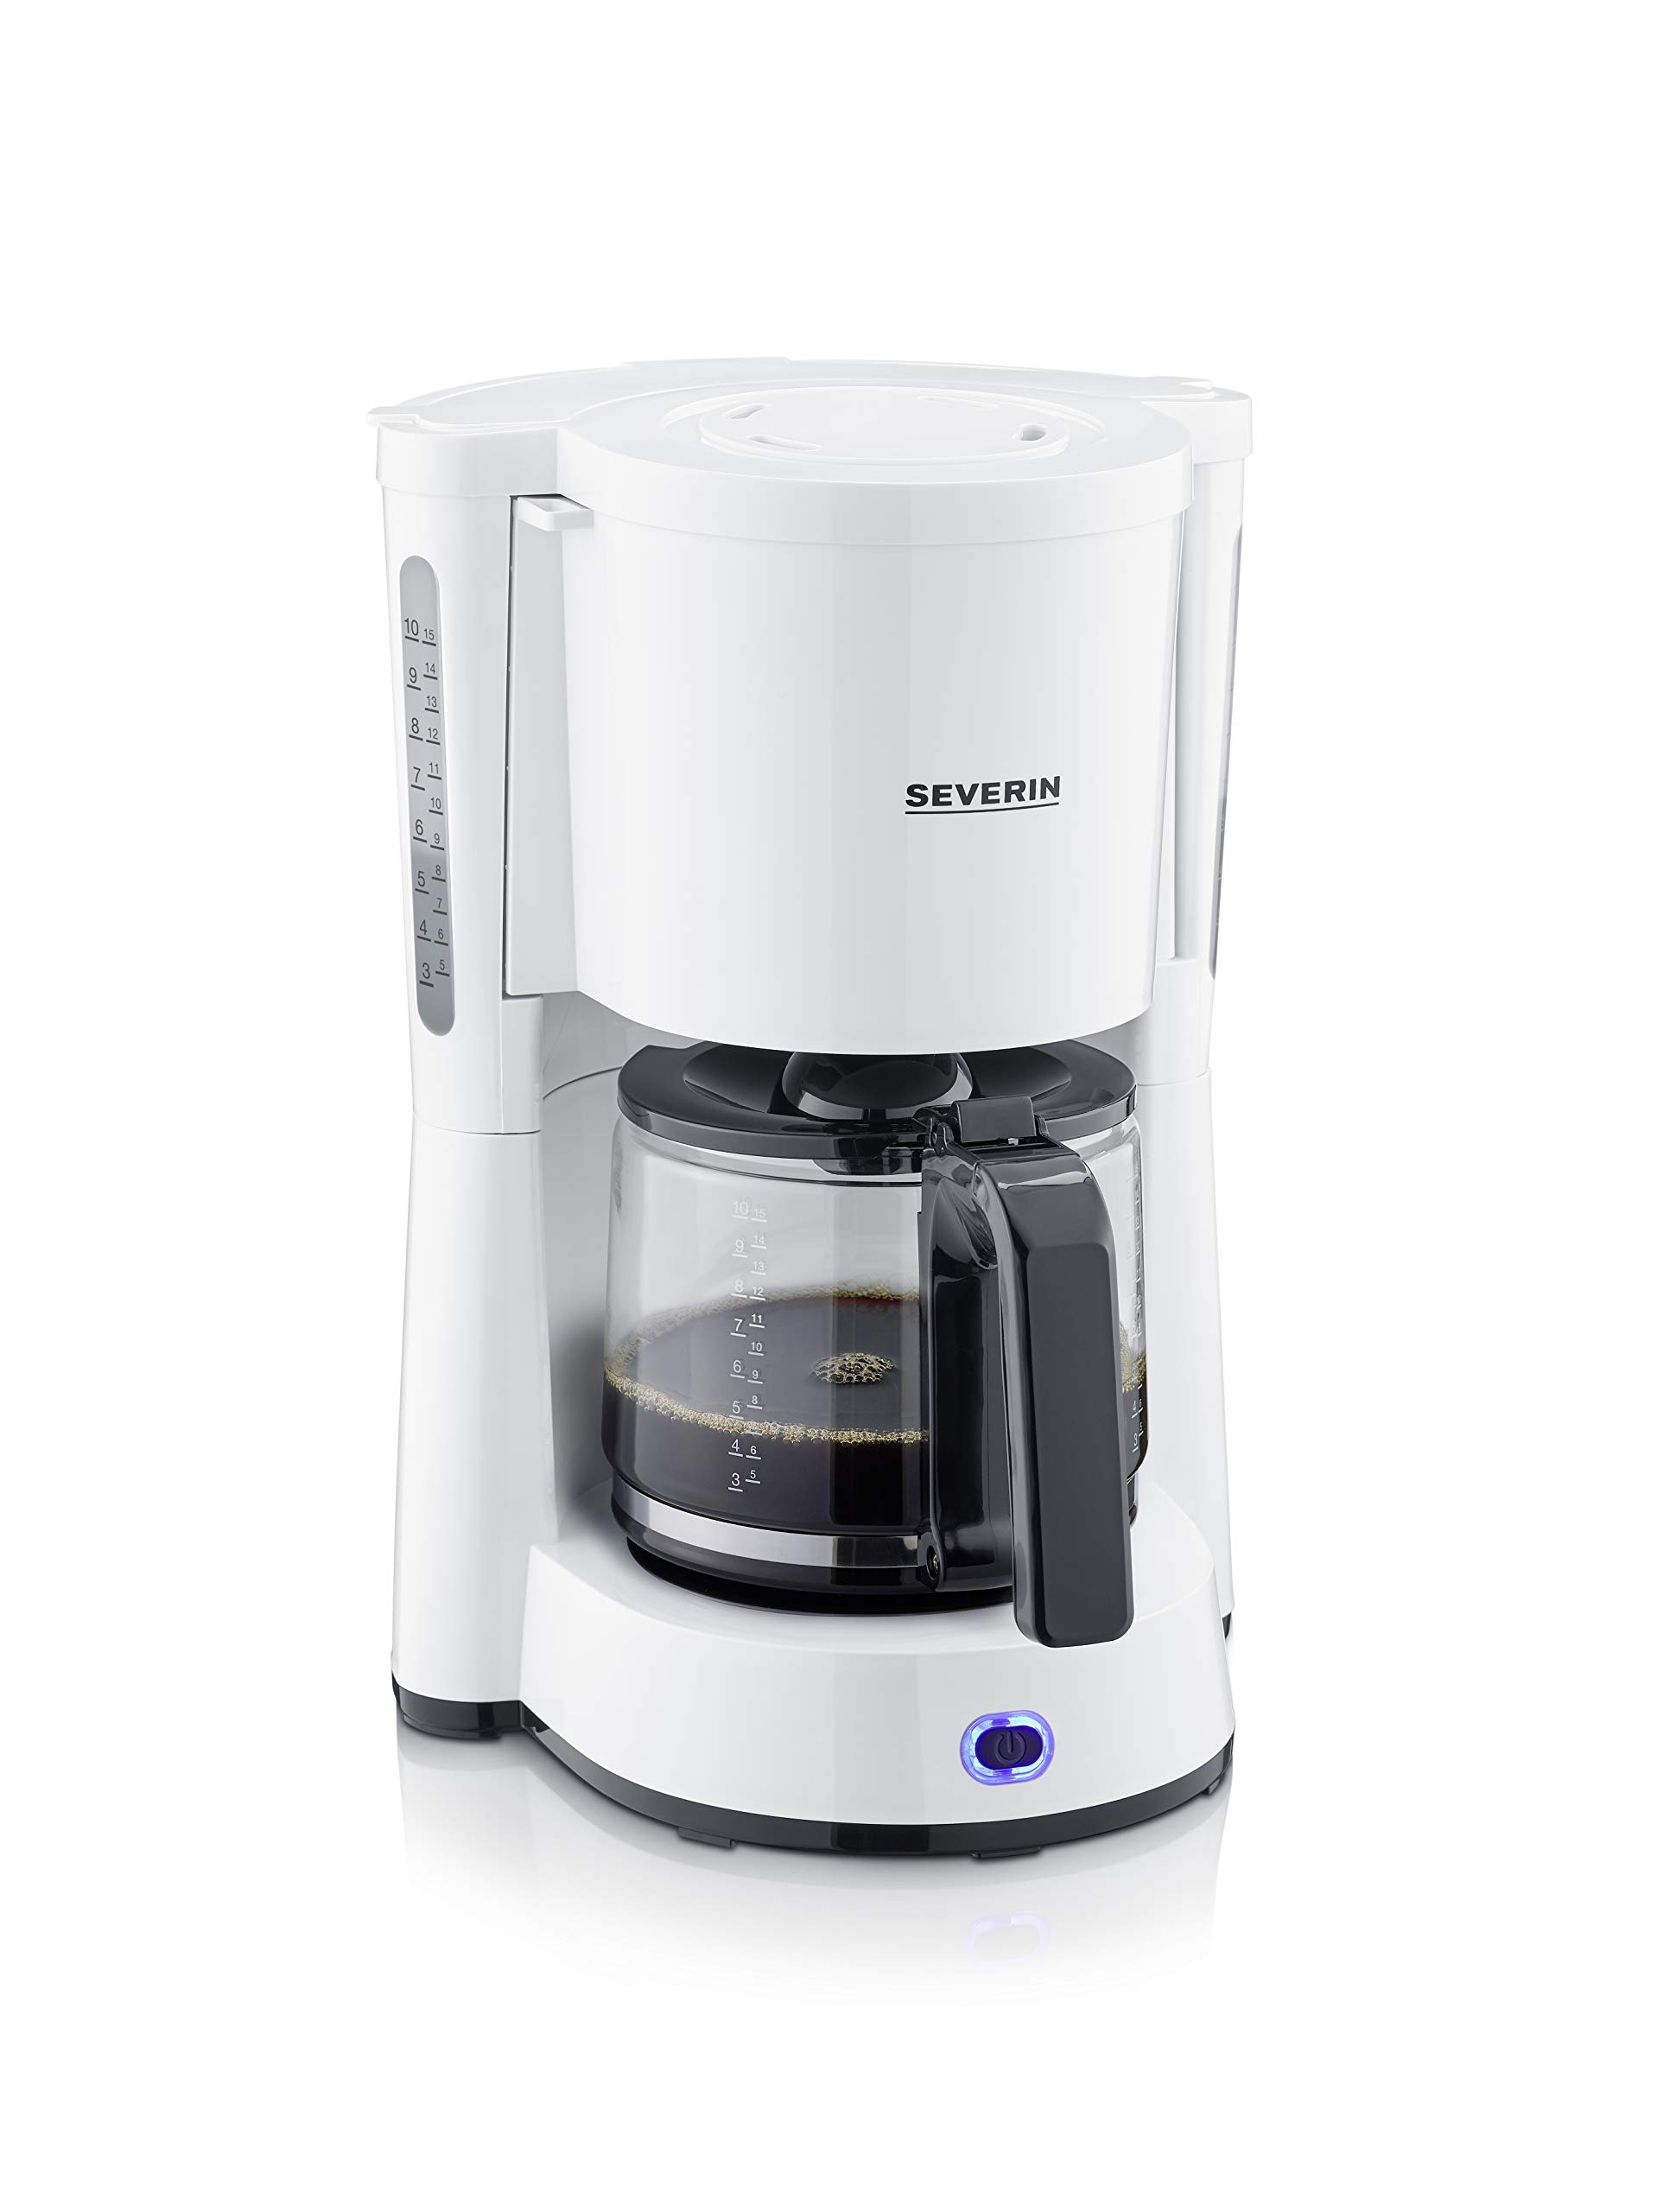 Severin KA 4816 - Cafetera de filtro Type, 1000 W, 1.25 L, color ...